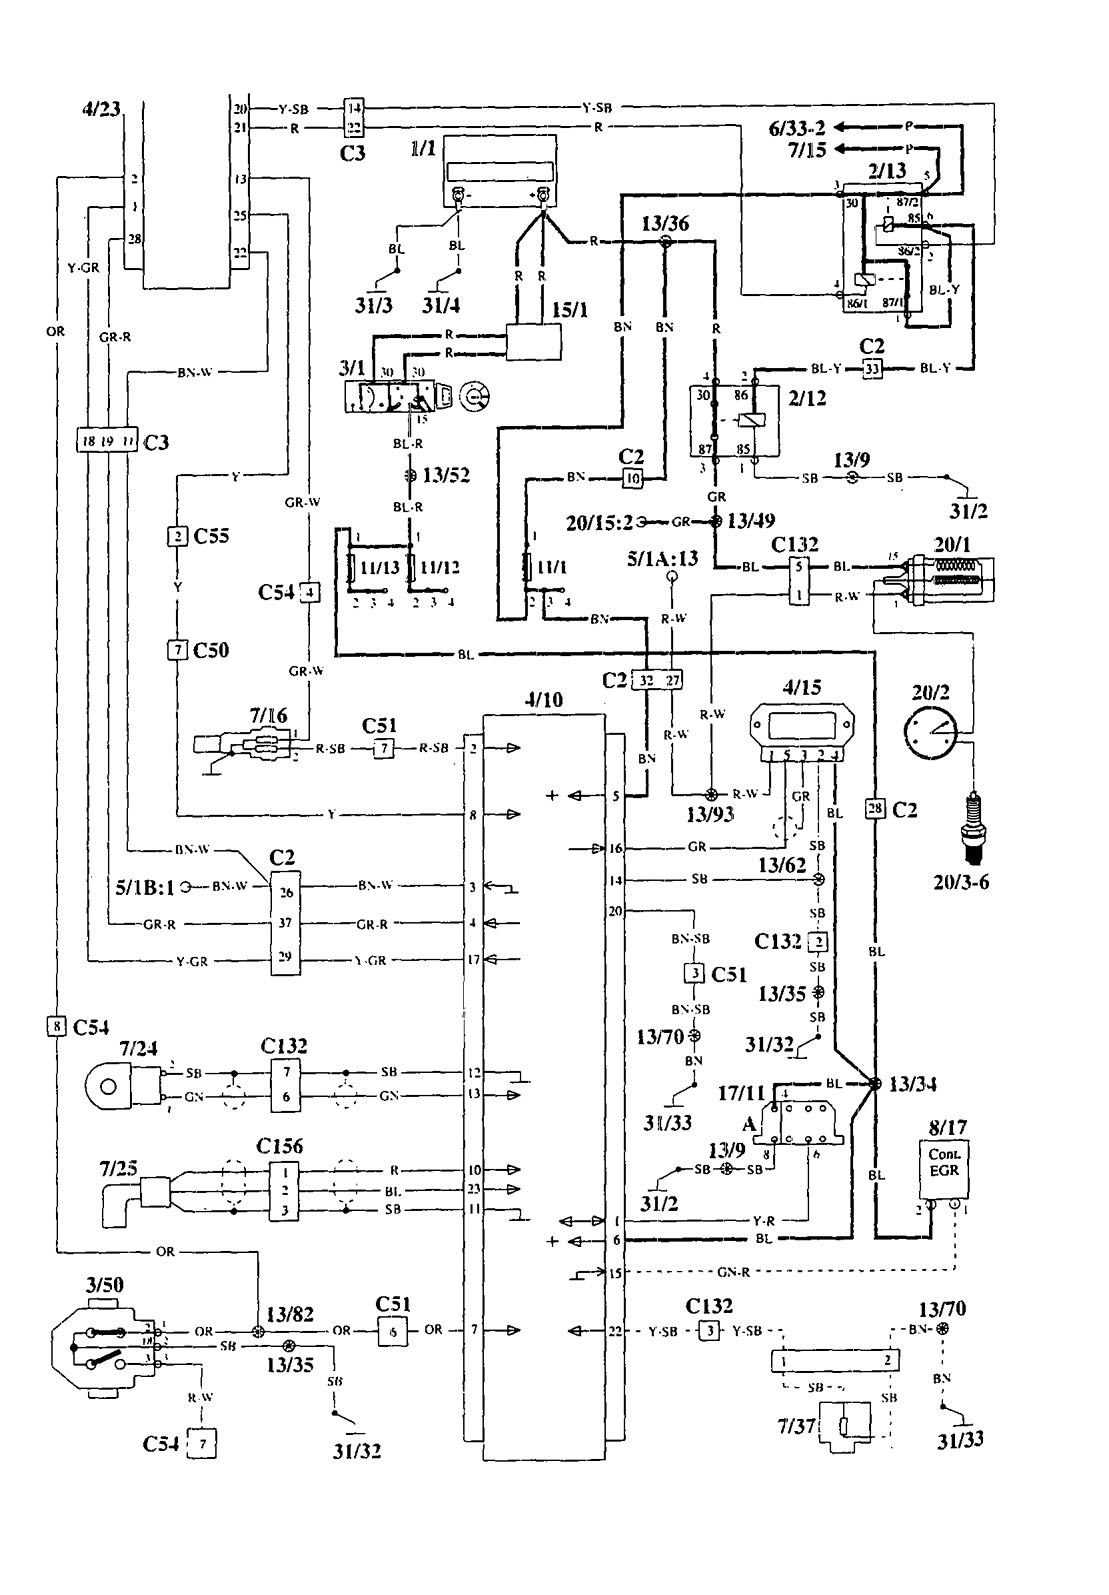 Volvo 850 Ignition Switch Wiring Diagram Best Wiring Library